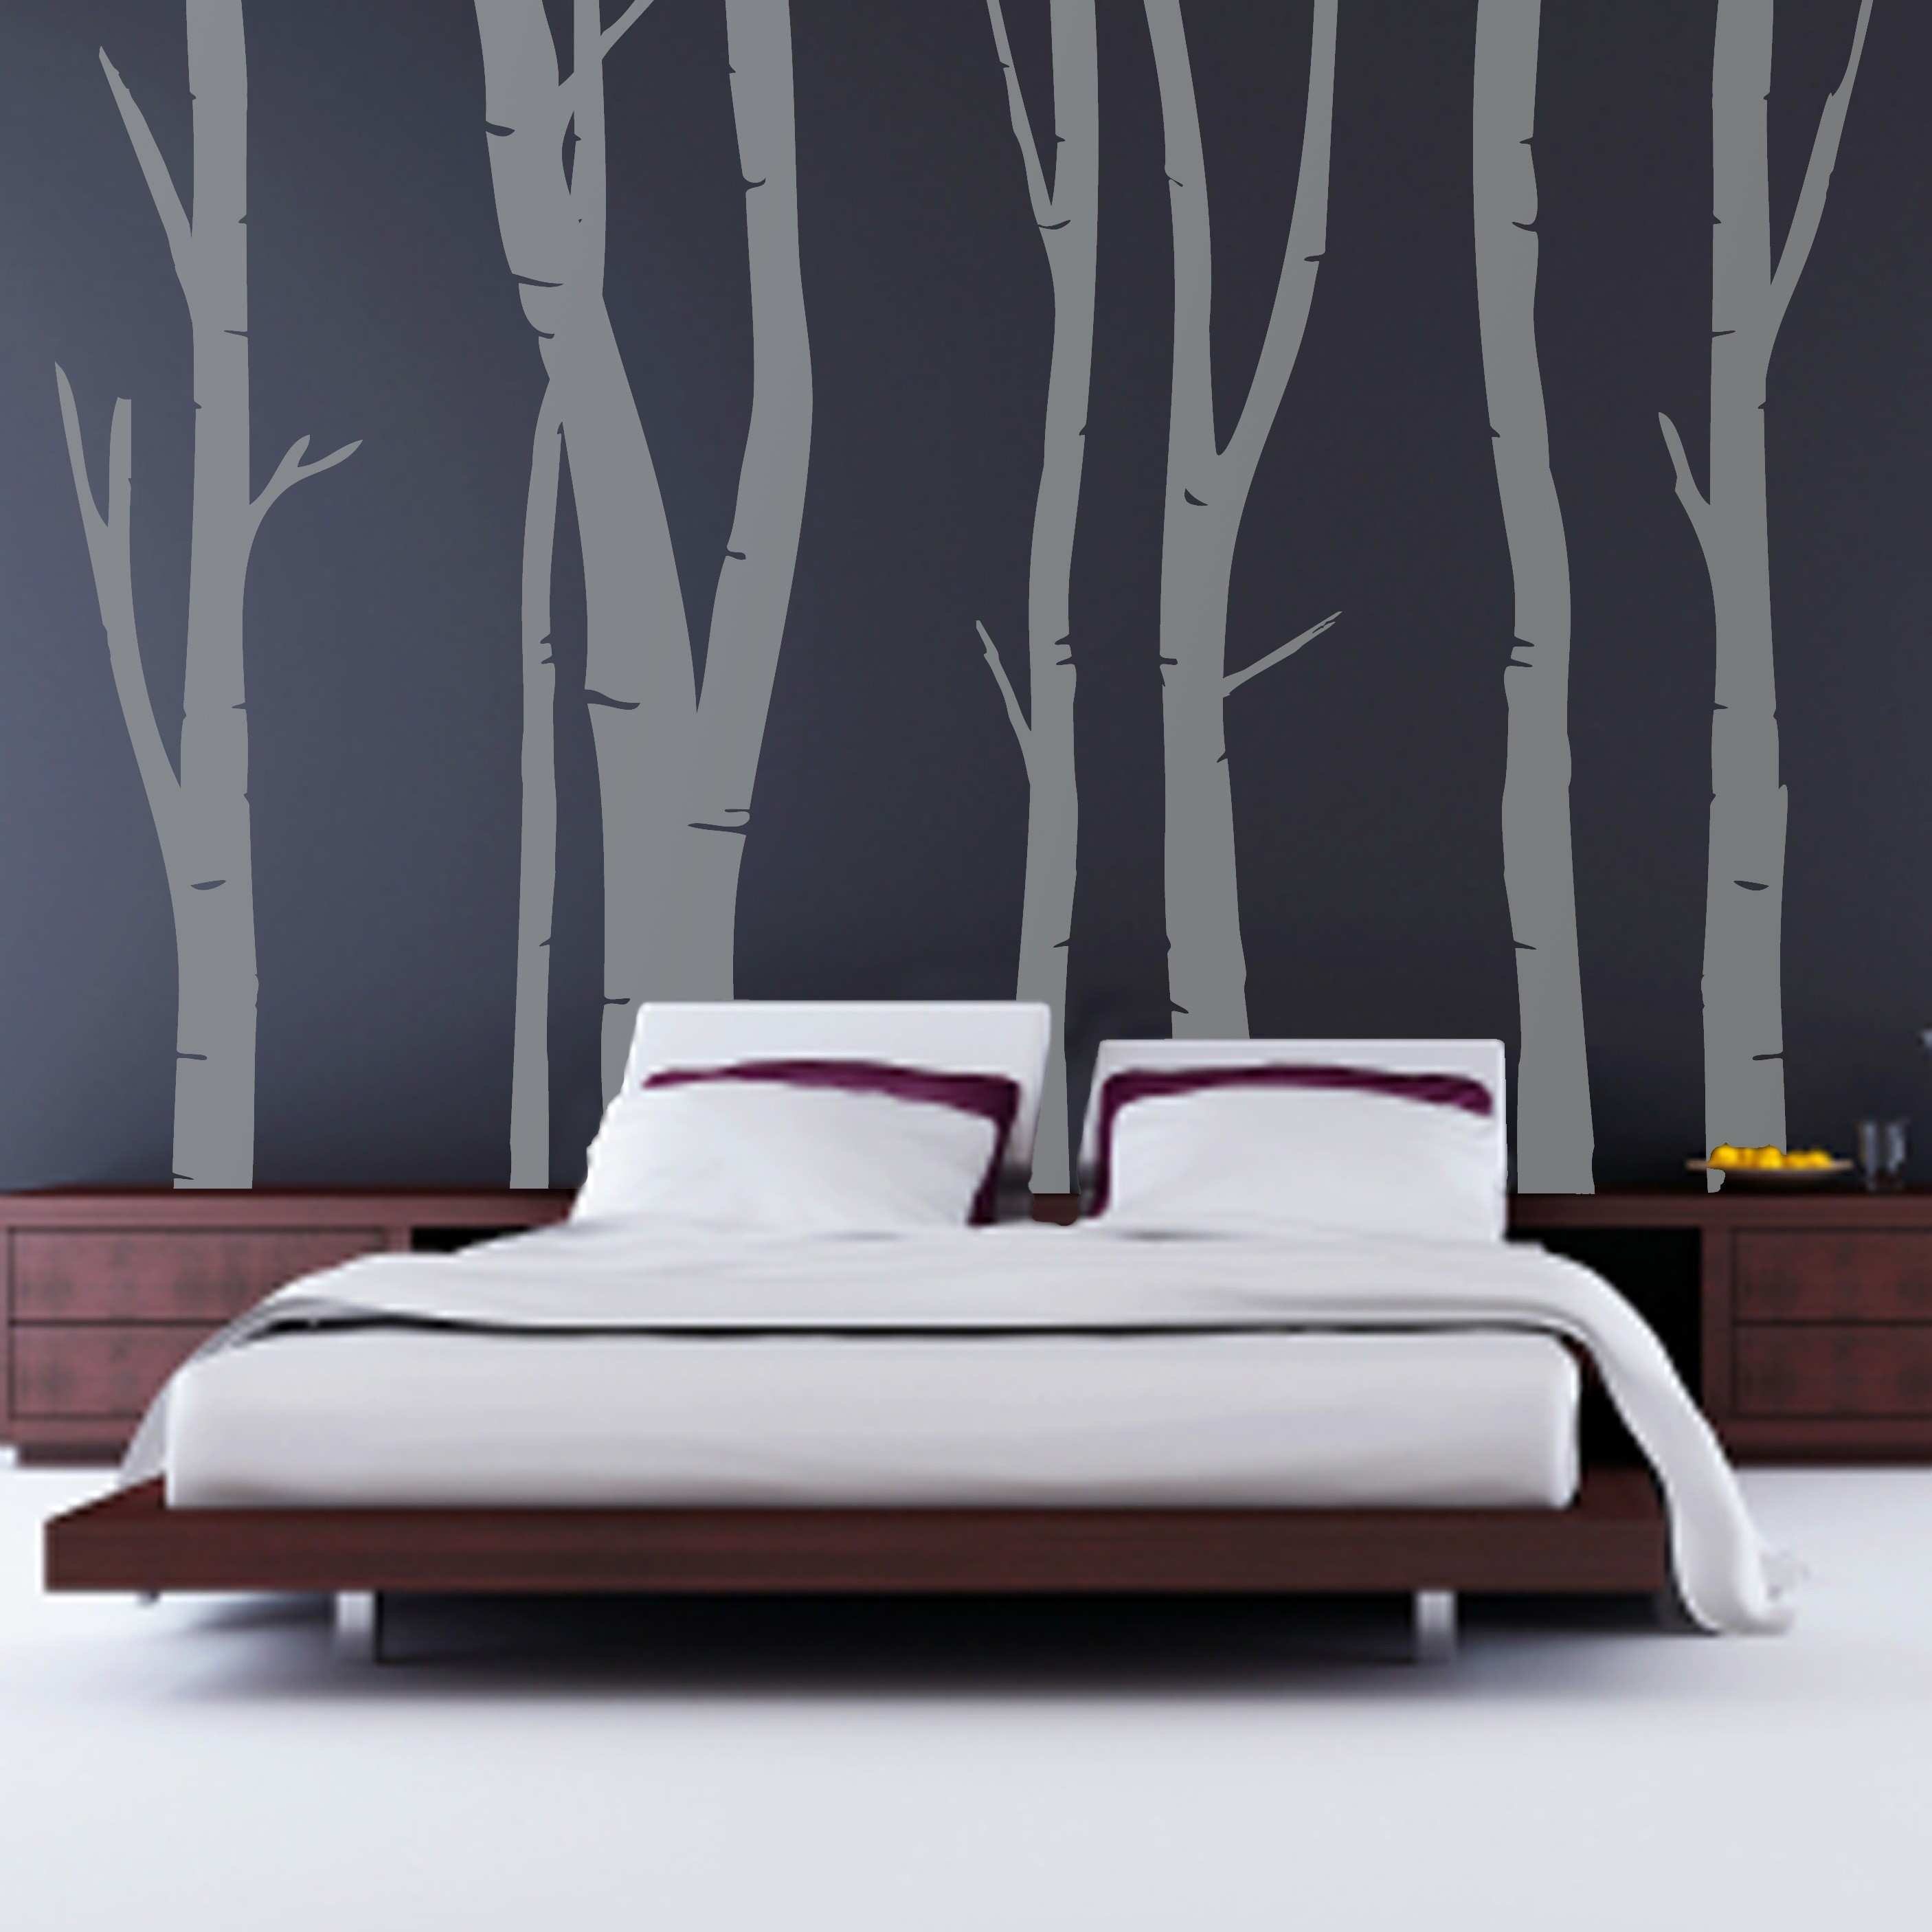 35 Awesome Decal Wall Art